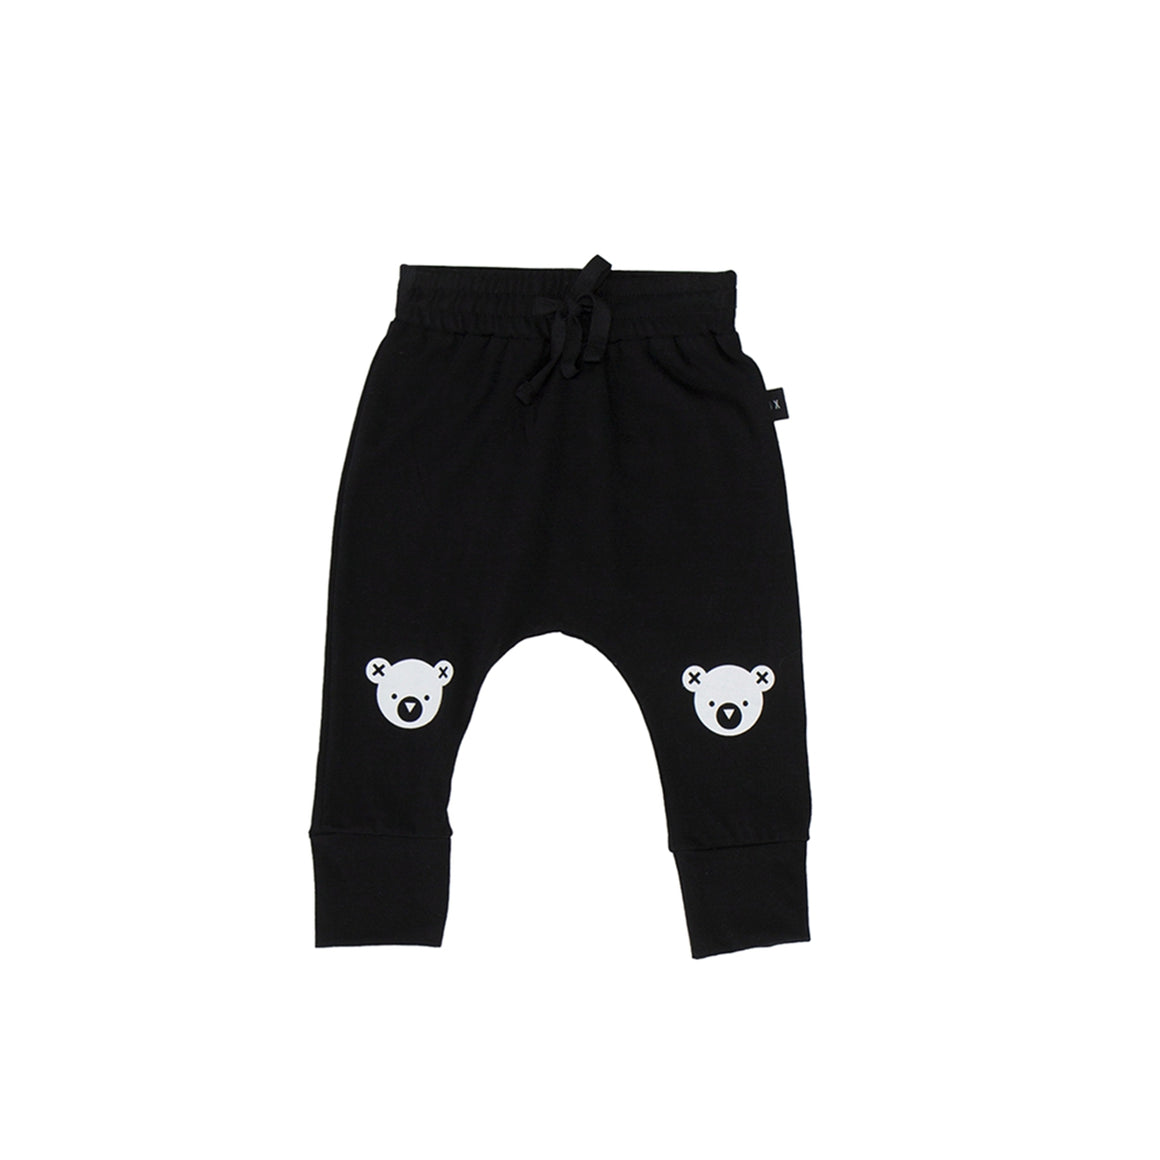 HUXBABY Bear Legs Drop Crotch Pant - Last One!! Size: 5Y